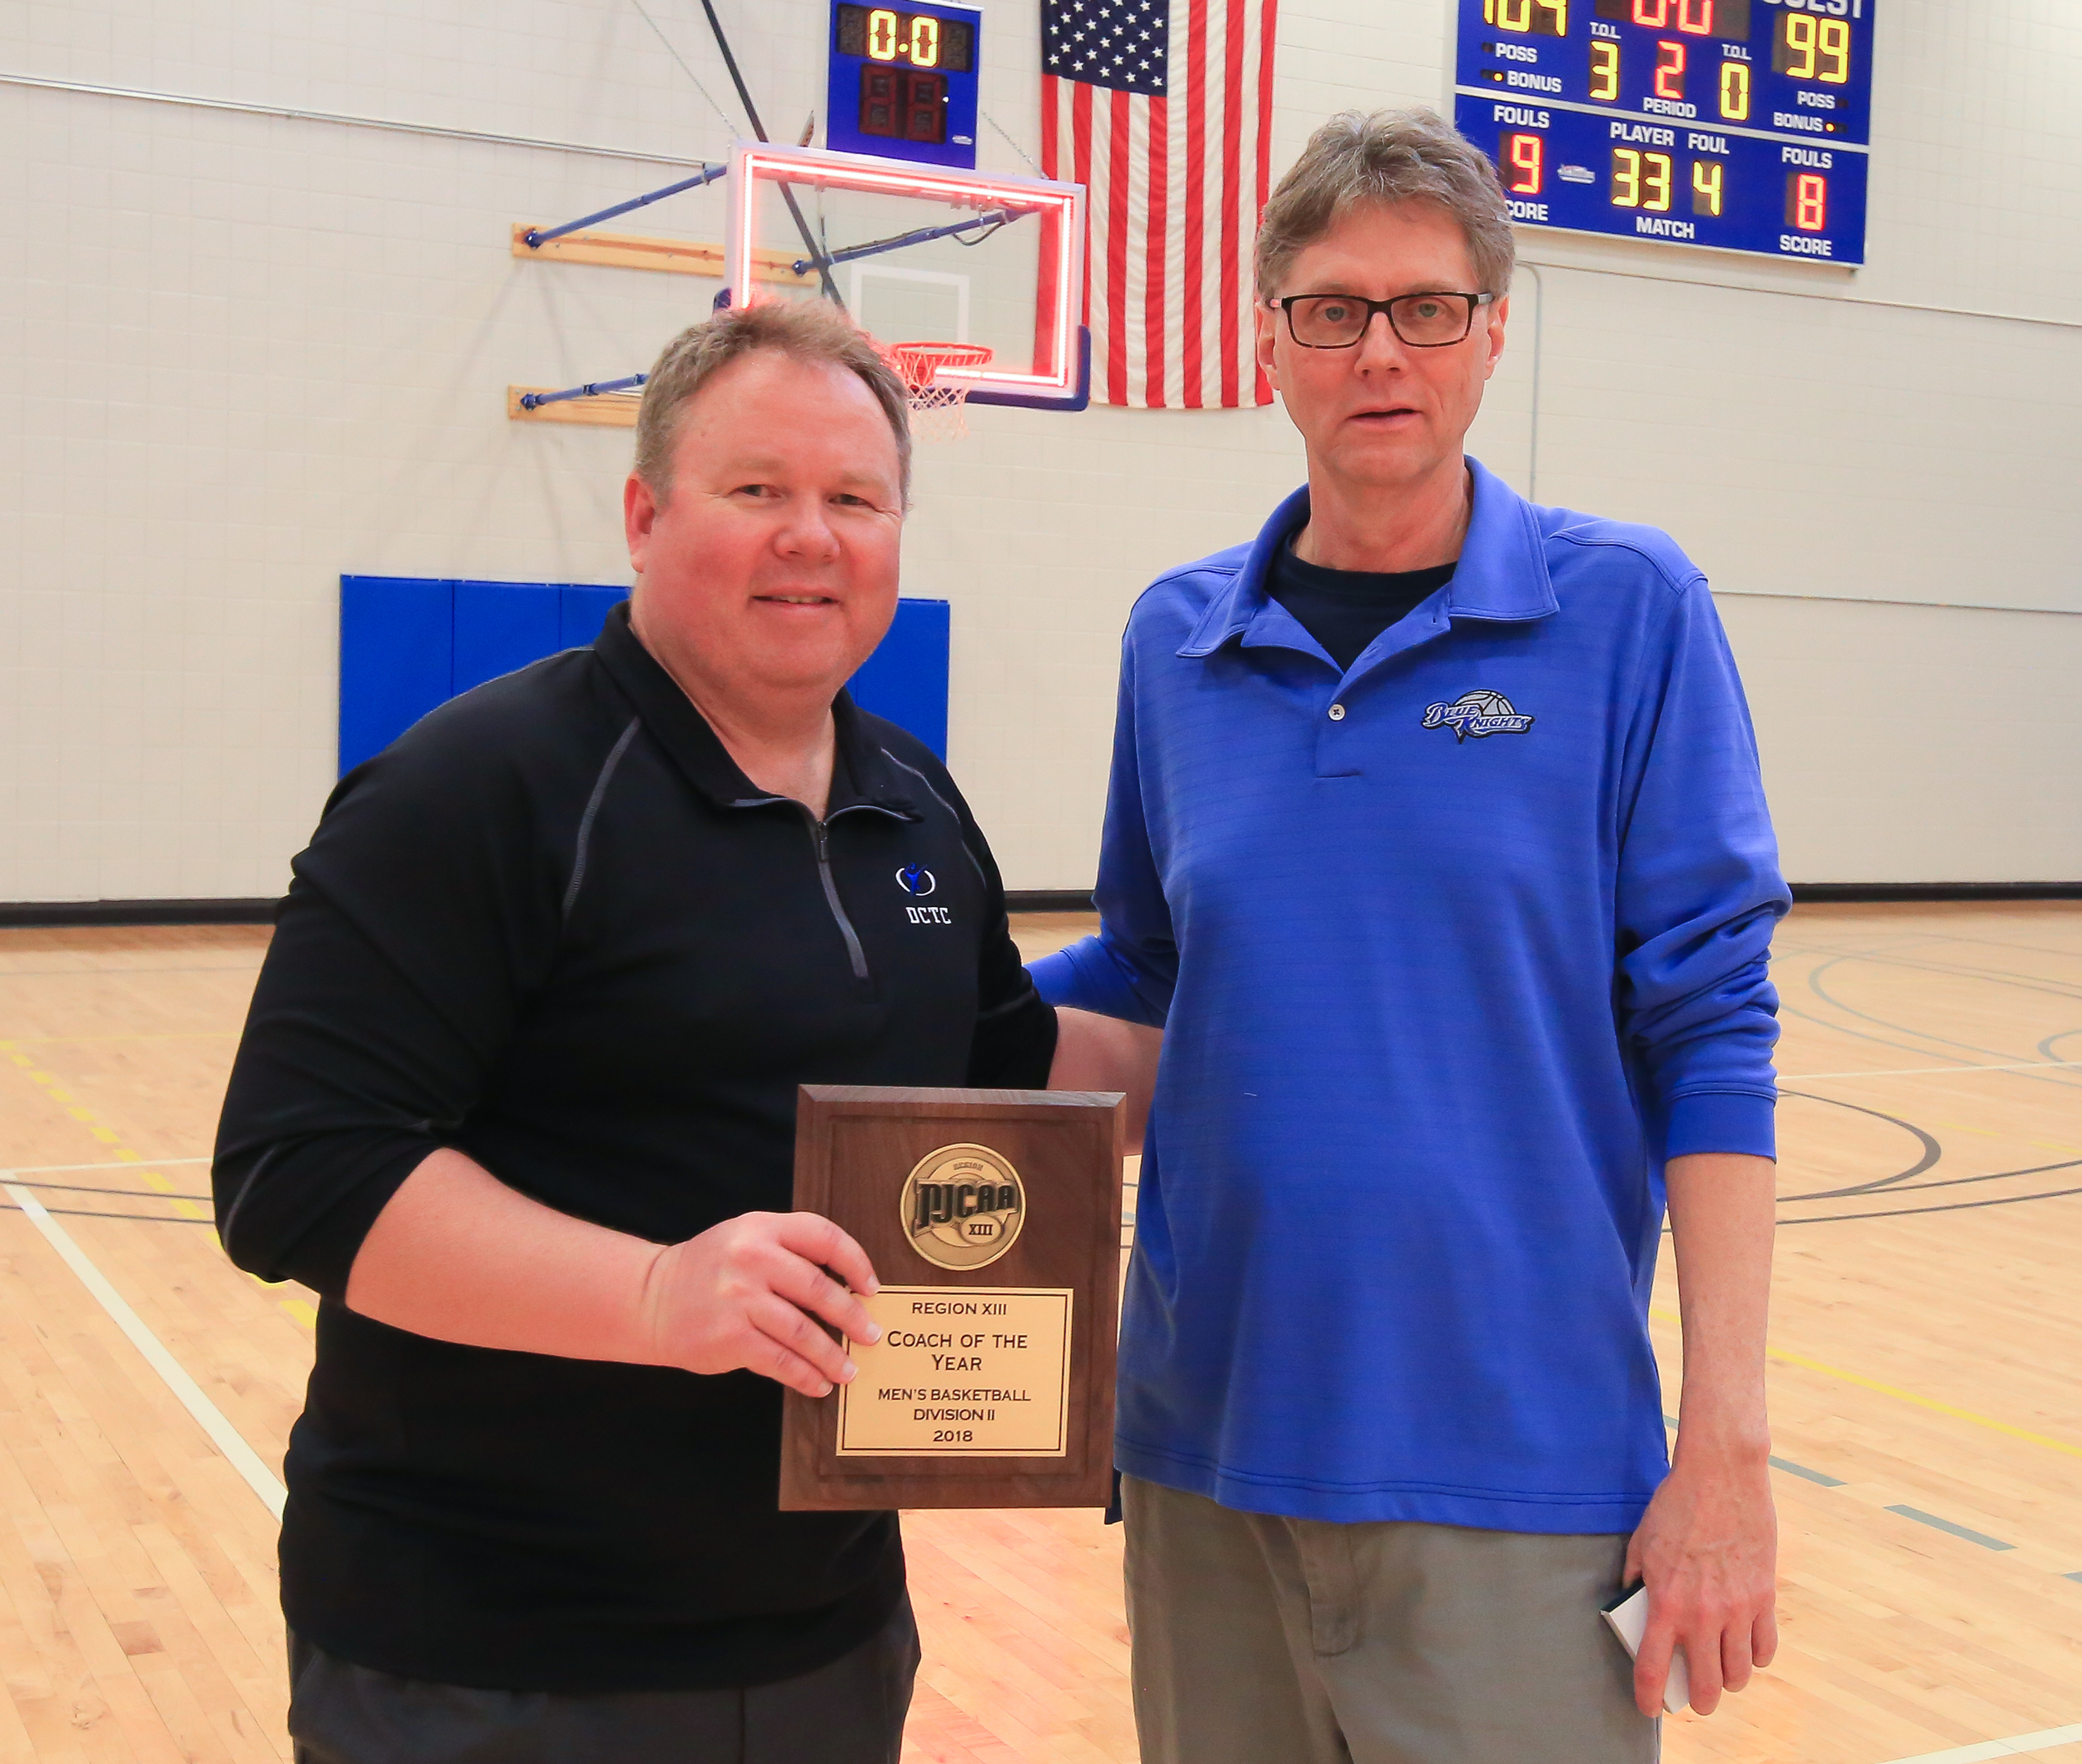 Coach Kelly Boe and President Tim Wynes